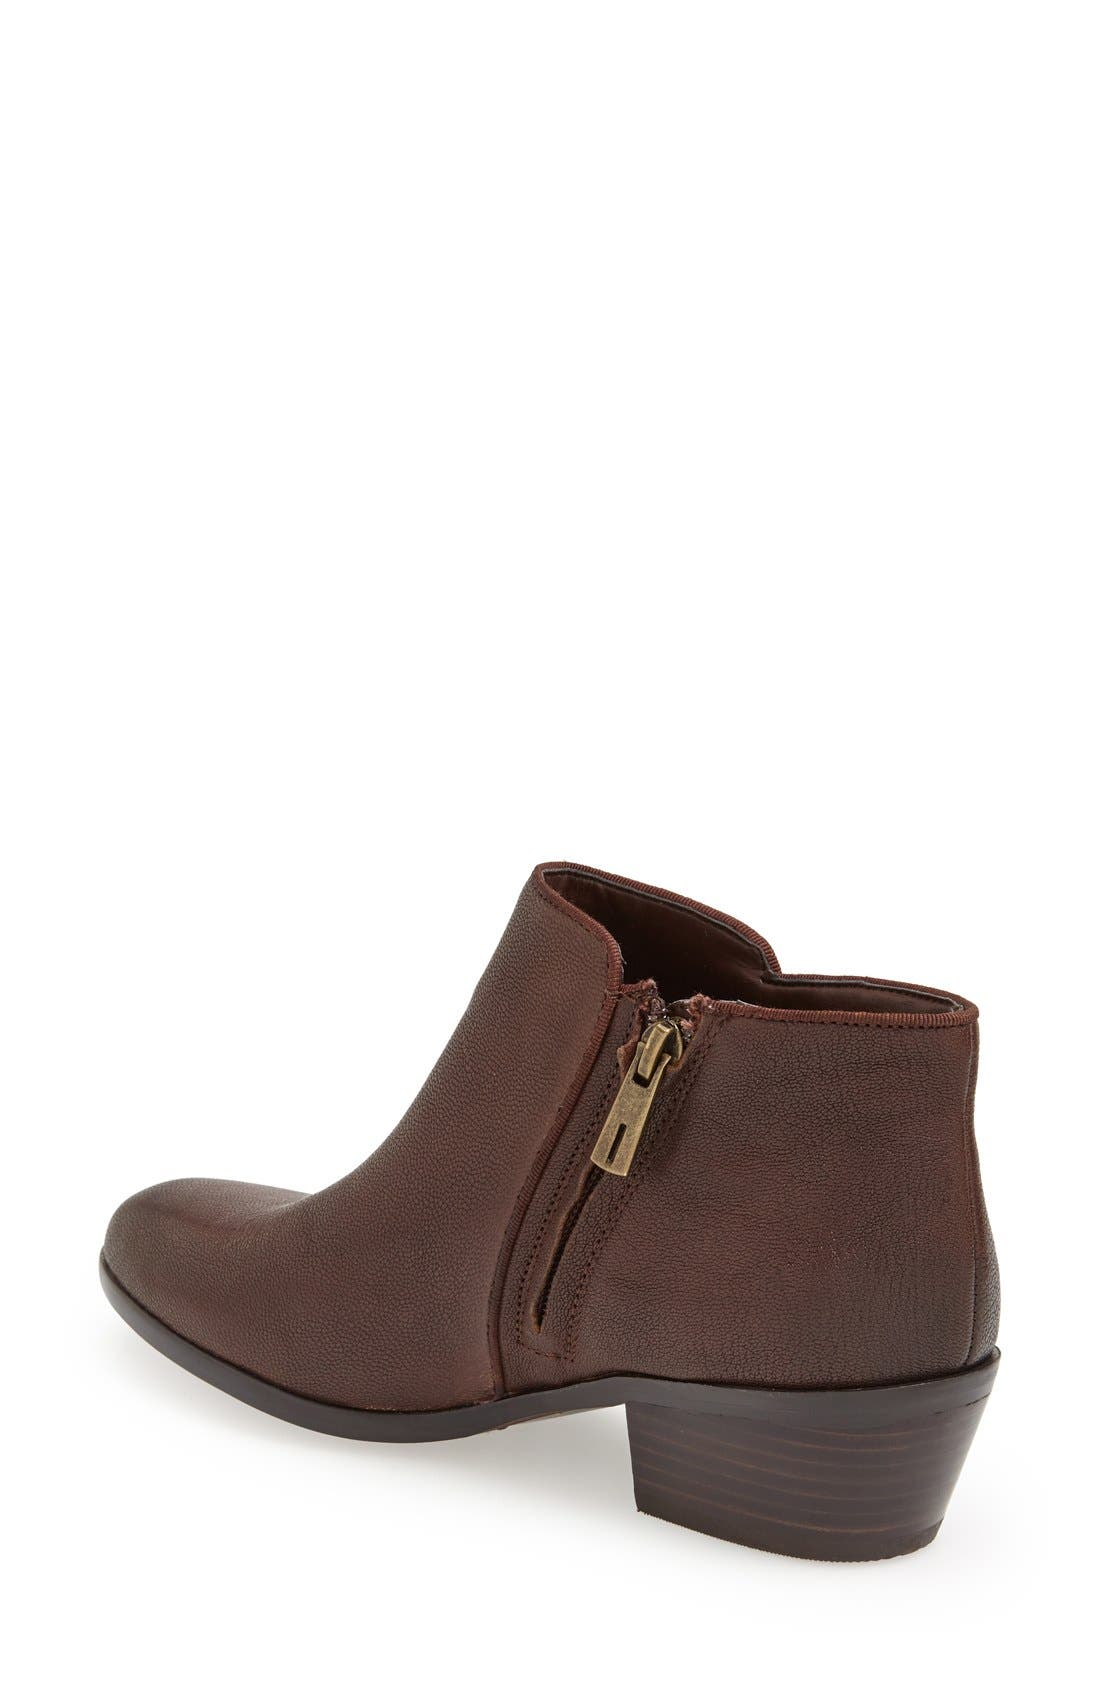 ,                             'Petty' Chelsea Boot,                             Alternate thumbnail 91, color,                             230